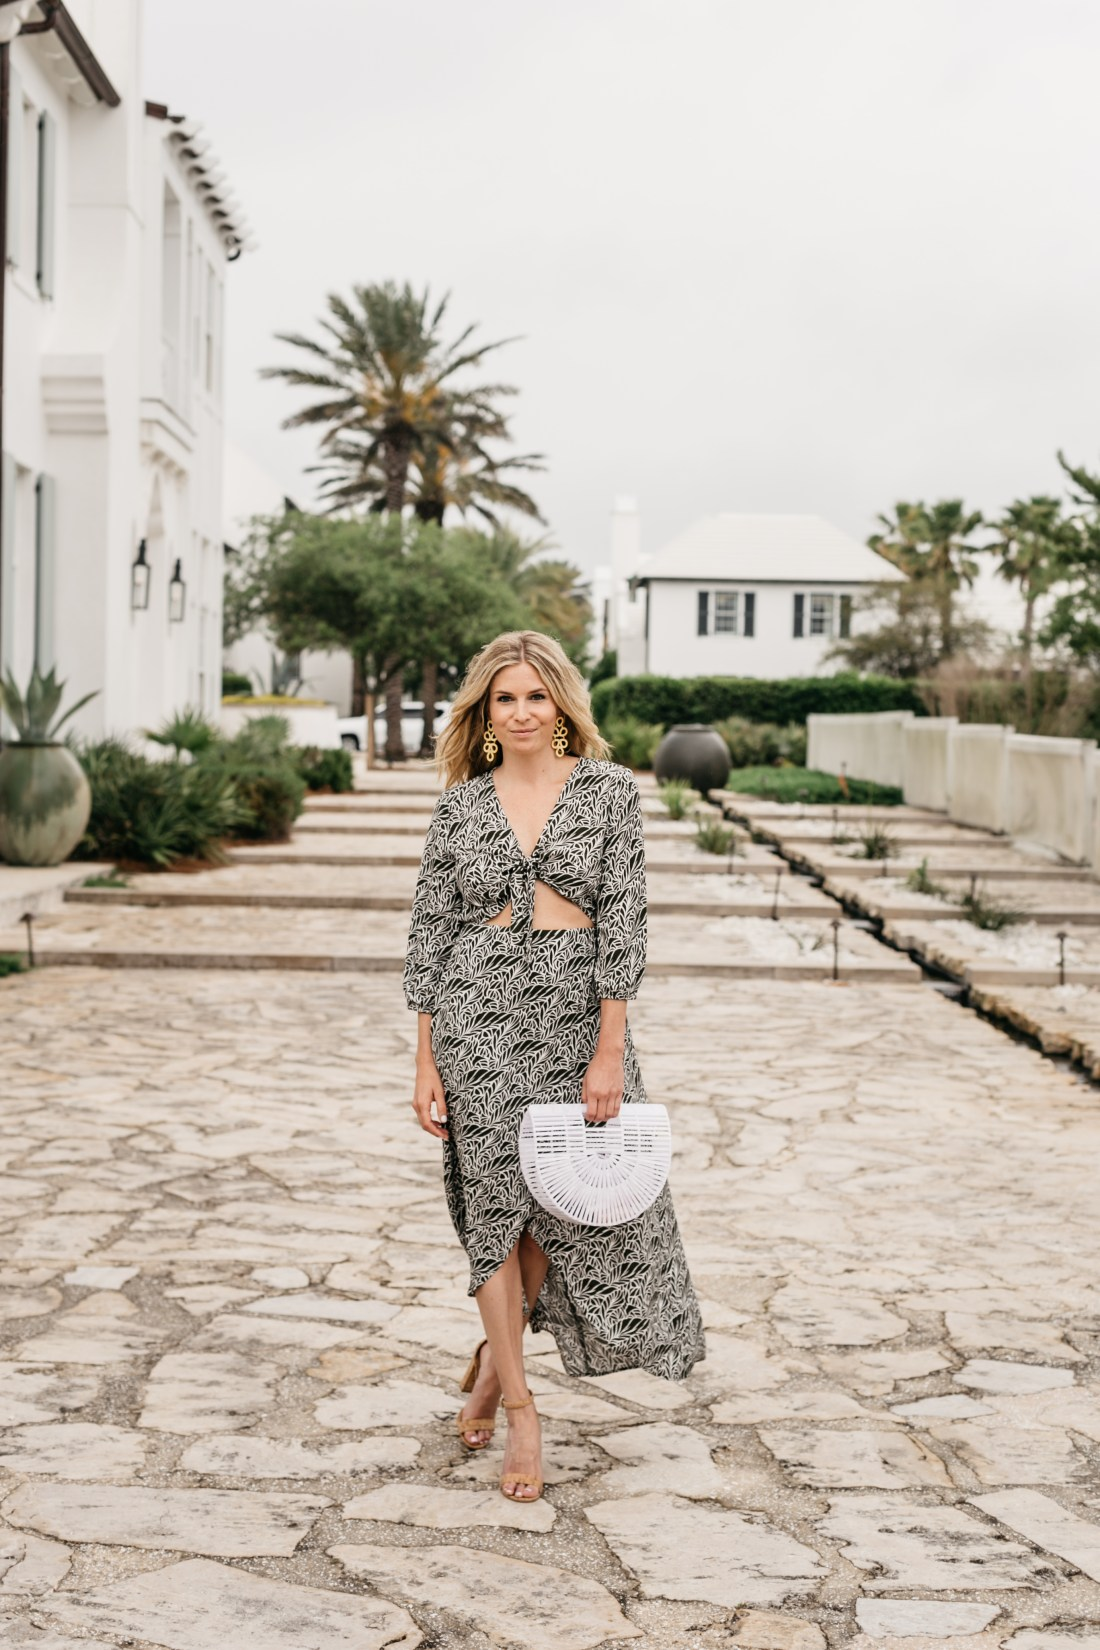 Summer outfit featured at ROSEMARY BEACH 30A